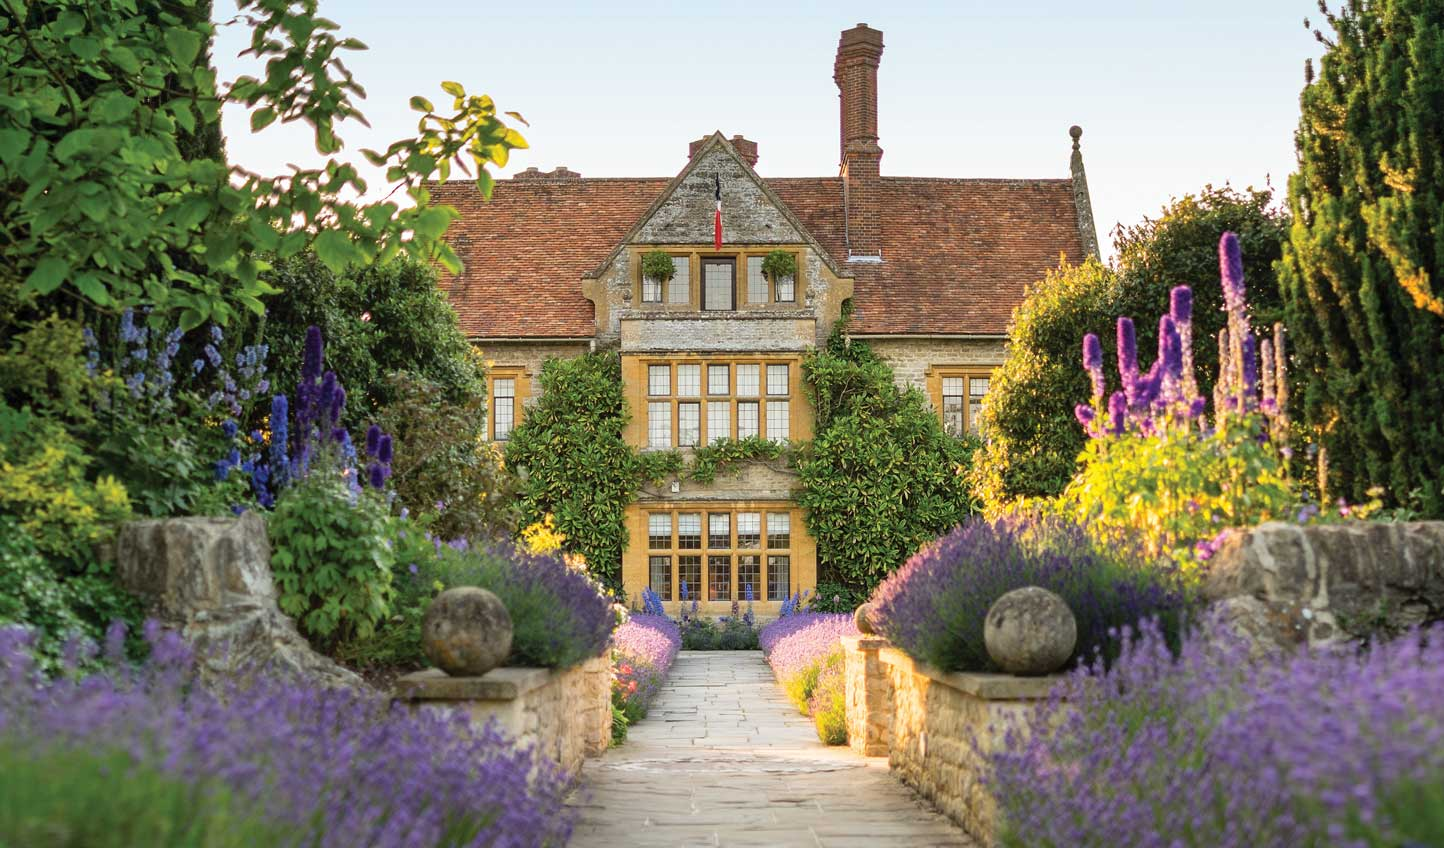 Indulge in some haute cuisine at Le Manoir aux Quat'Saisons